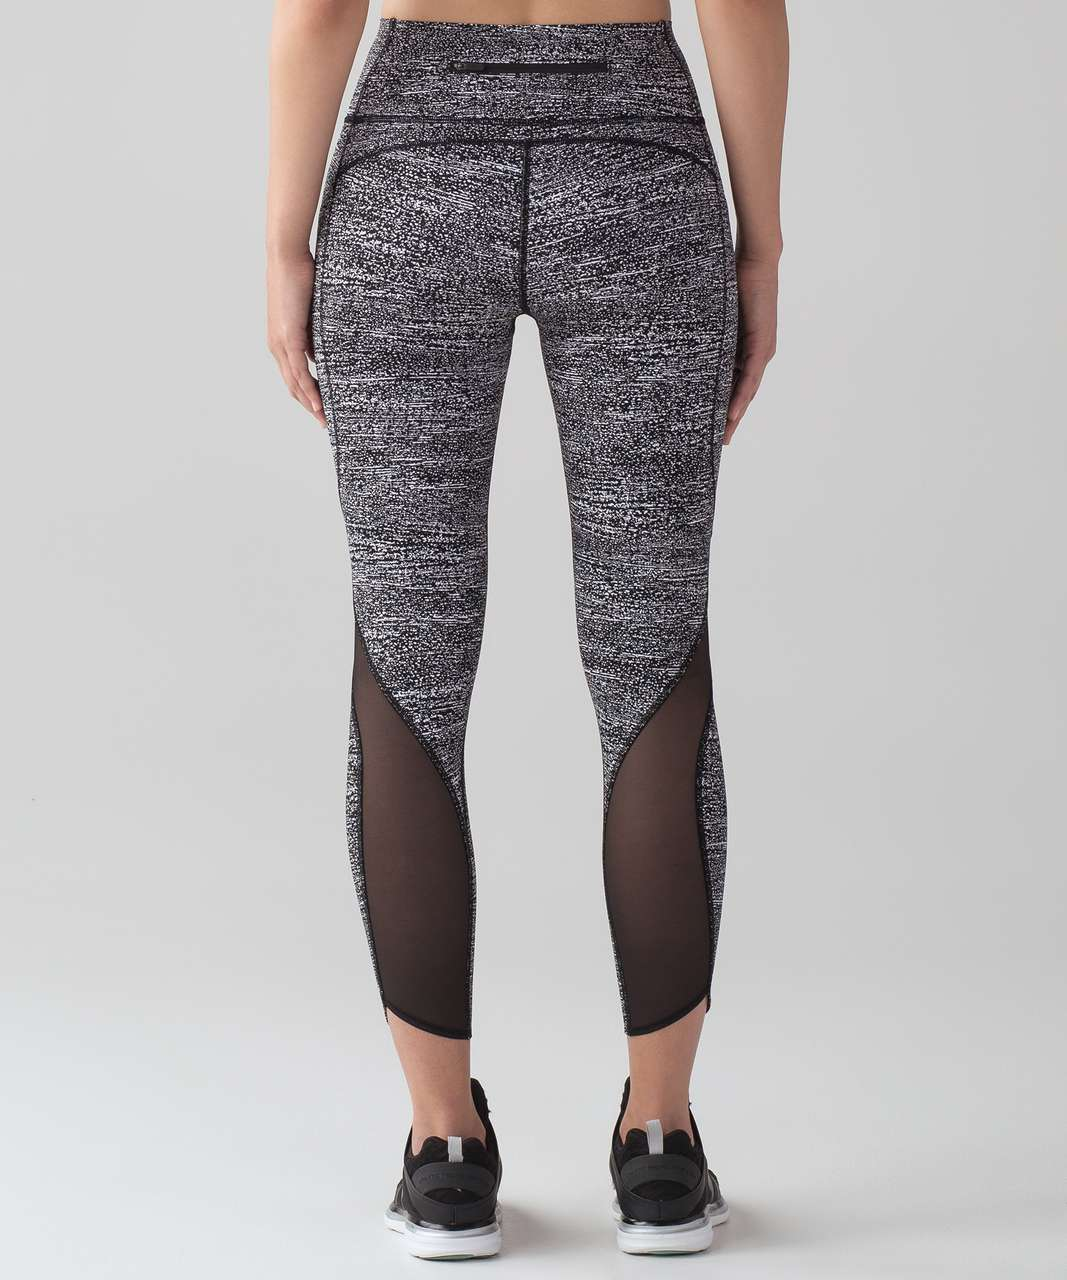 823ce866f1 Lululemon Pace Perfect 7/8 Tight (25